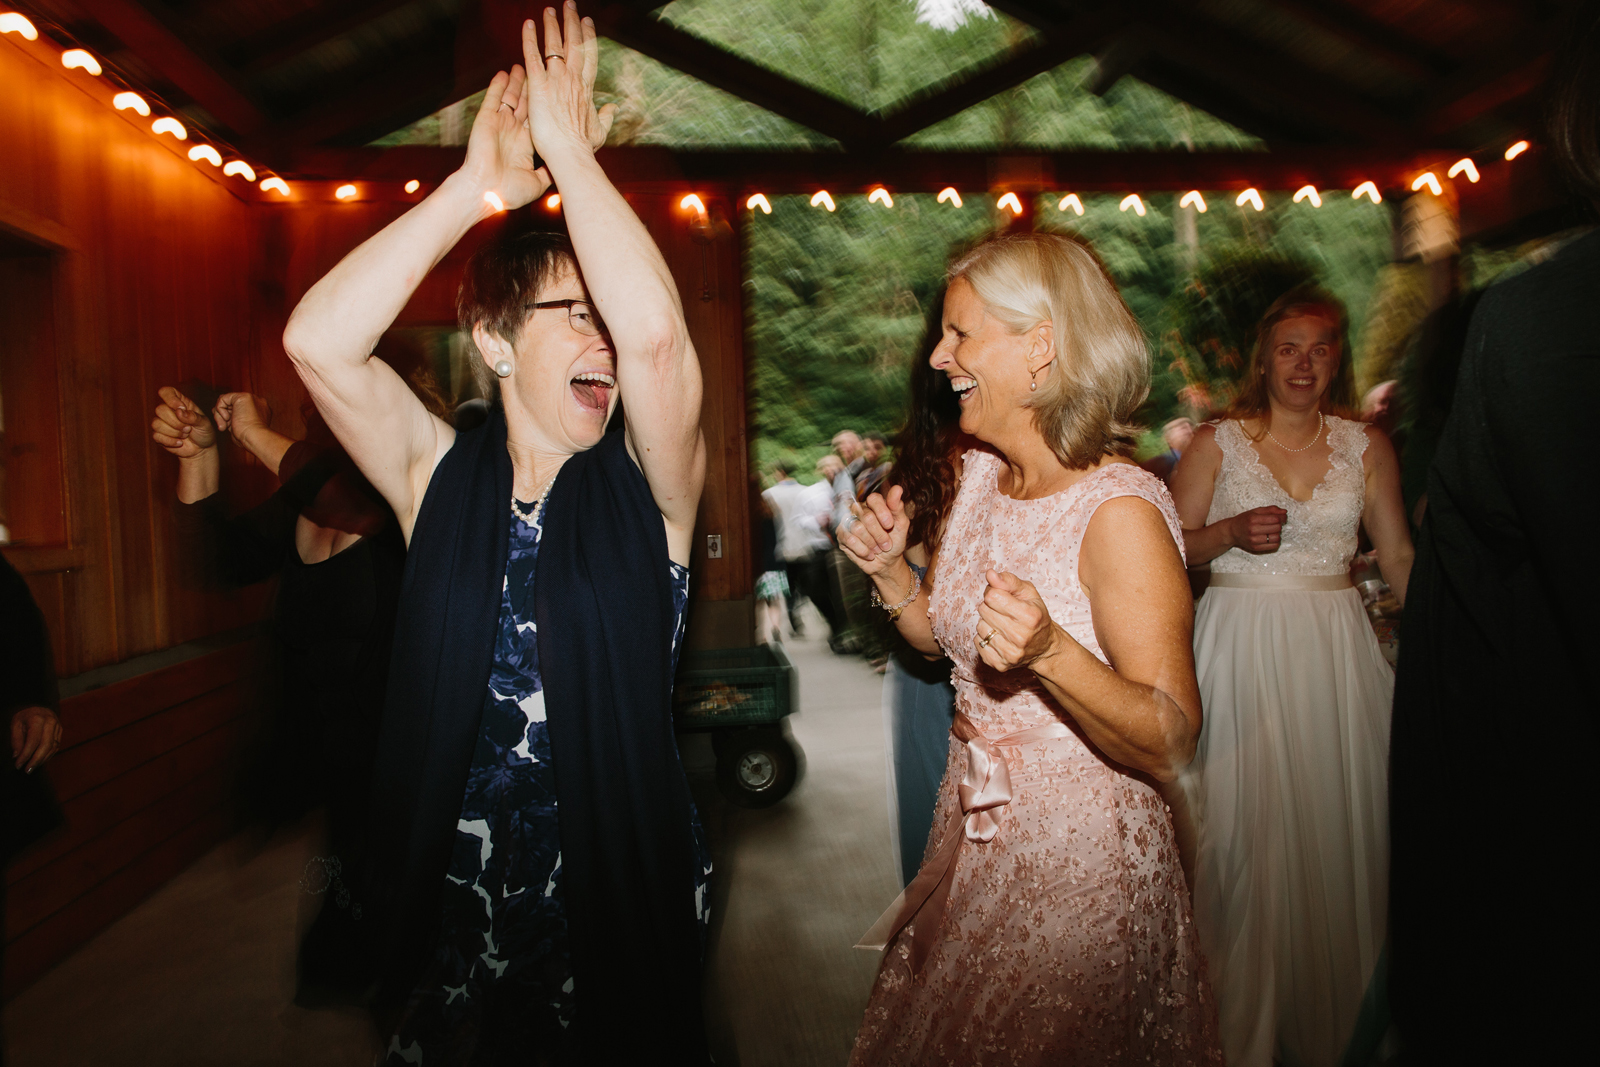 guests dance during wedding reception at Bridal Veil Lakes in Corbett, Oregon